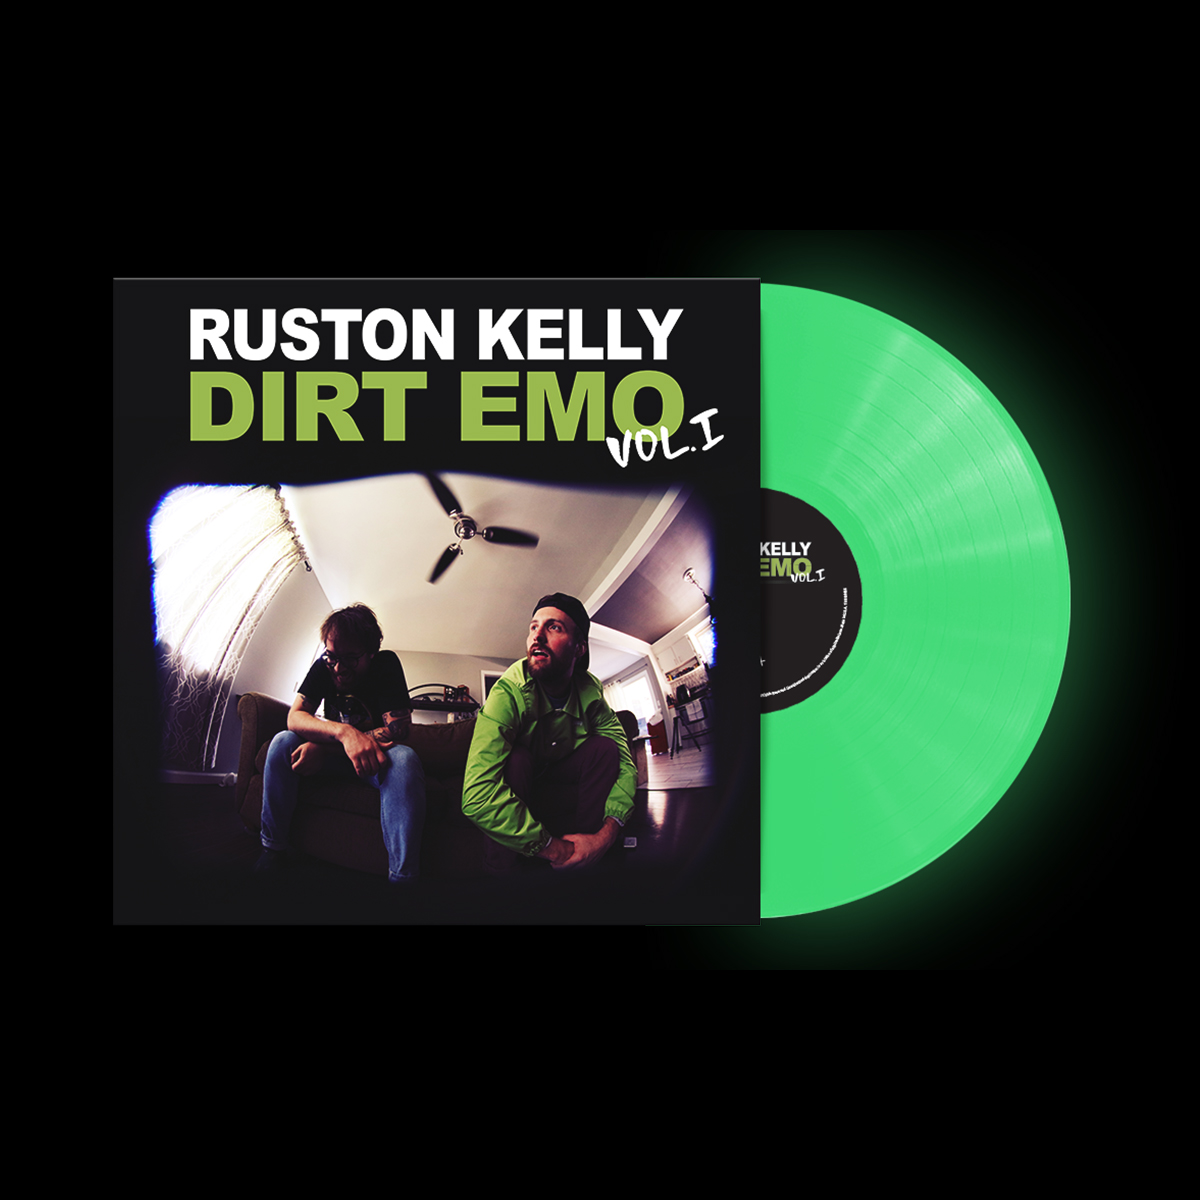 Dirt Emo Hoodie + Tee Shirt + Dirt Emo Vol 1. Glow-in-the-dark Vinyl or Download (optional)